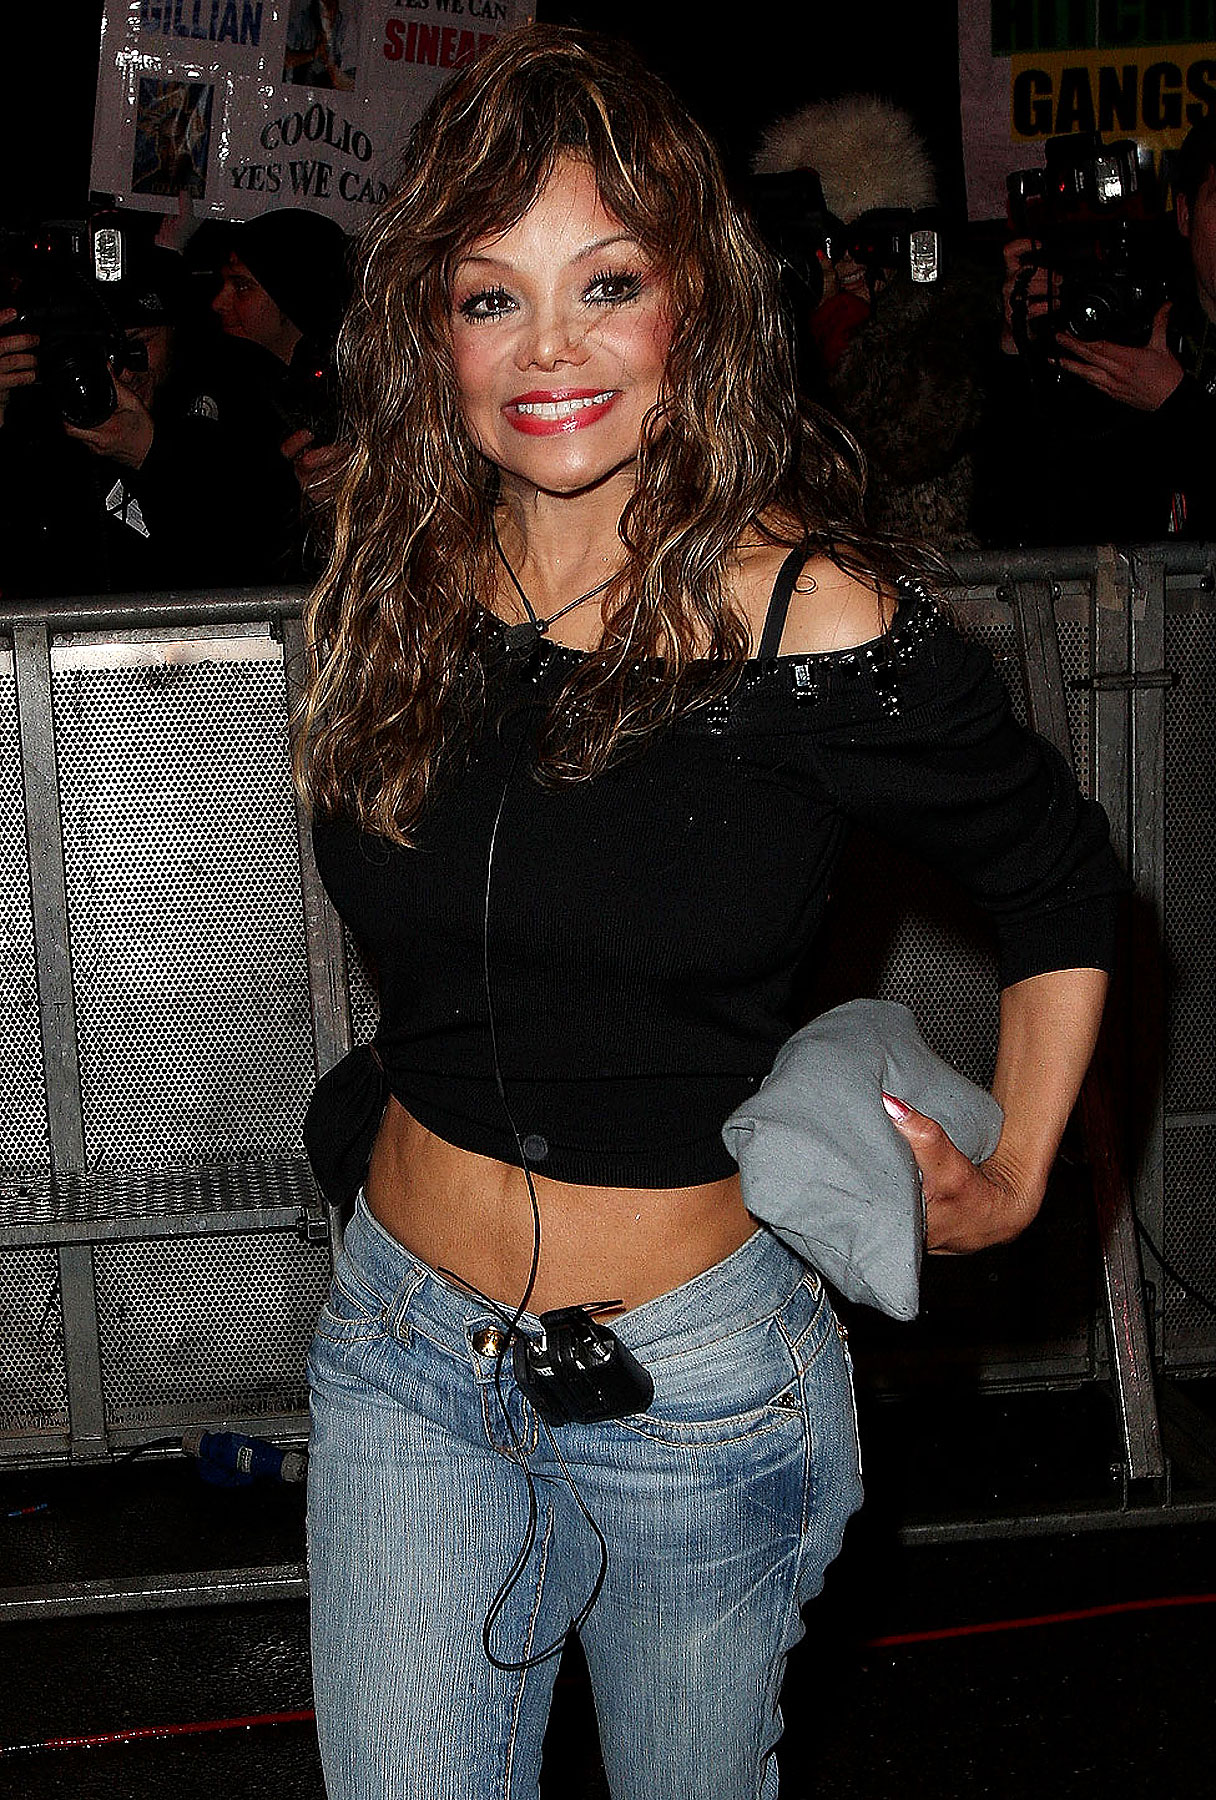 La Toya Jackson Wants to Step Into 'Dancing With the Stars'